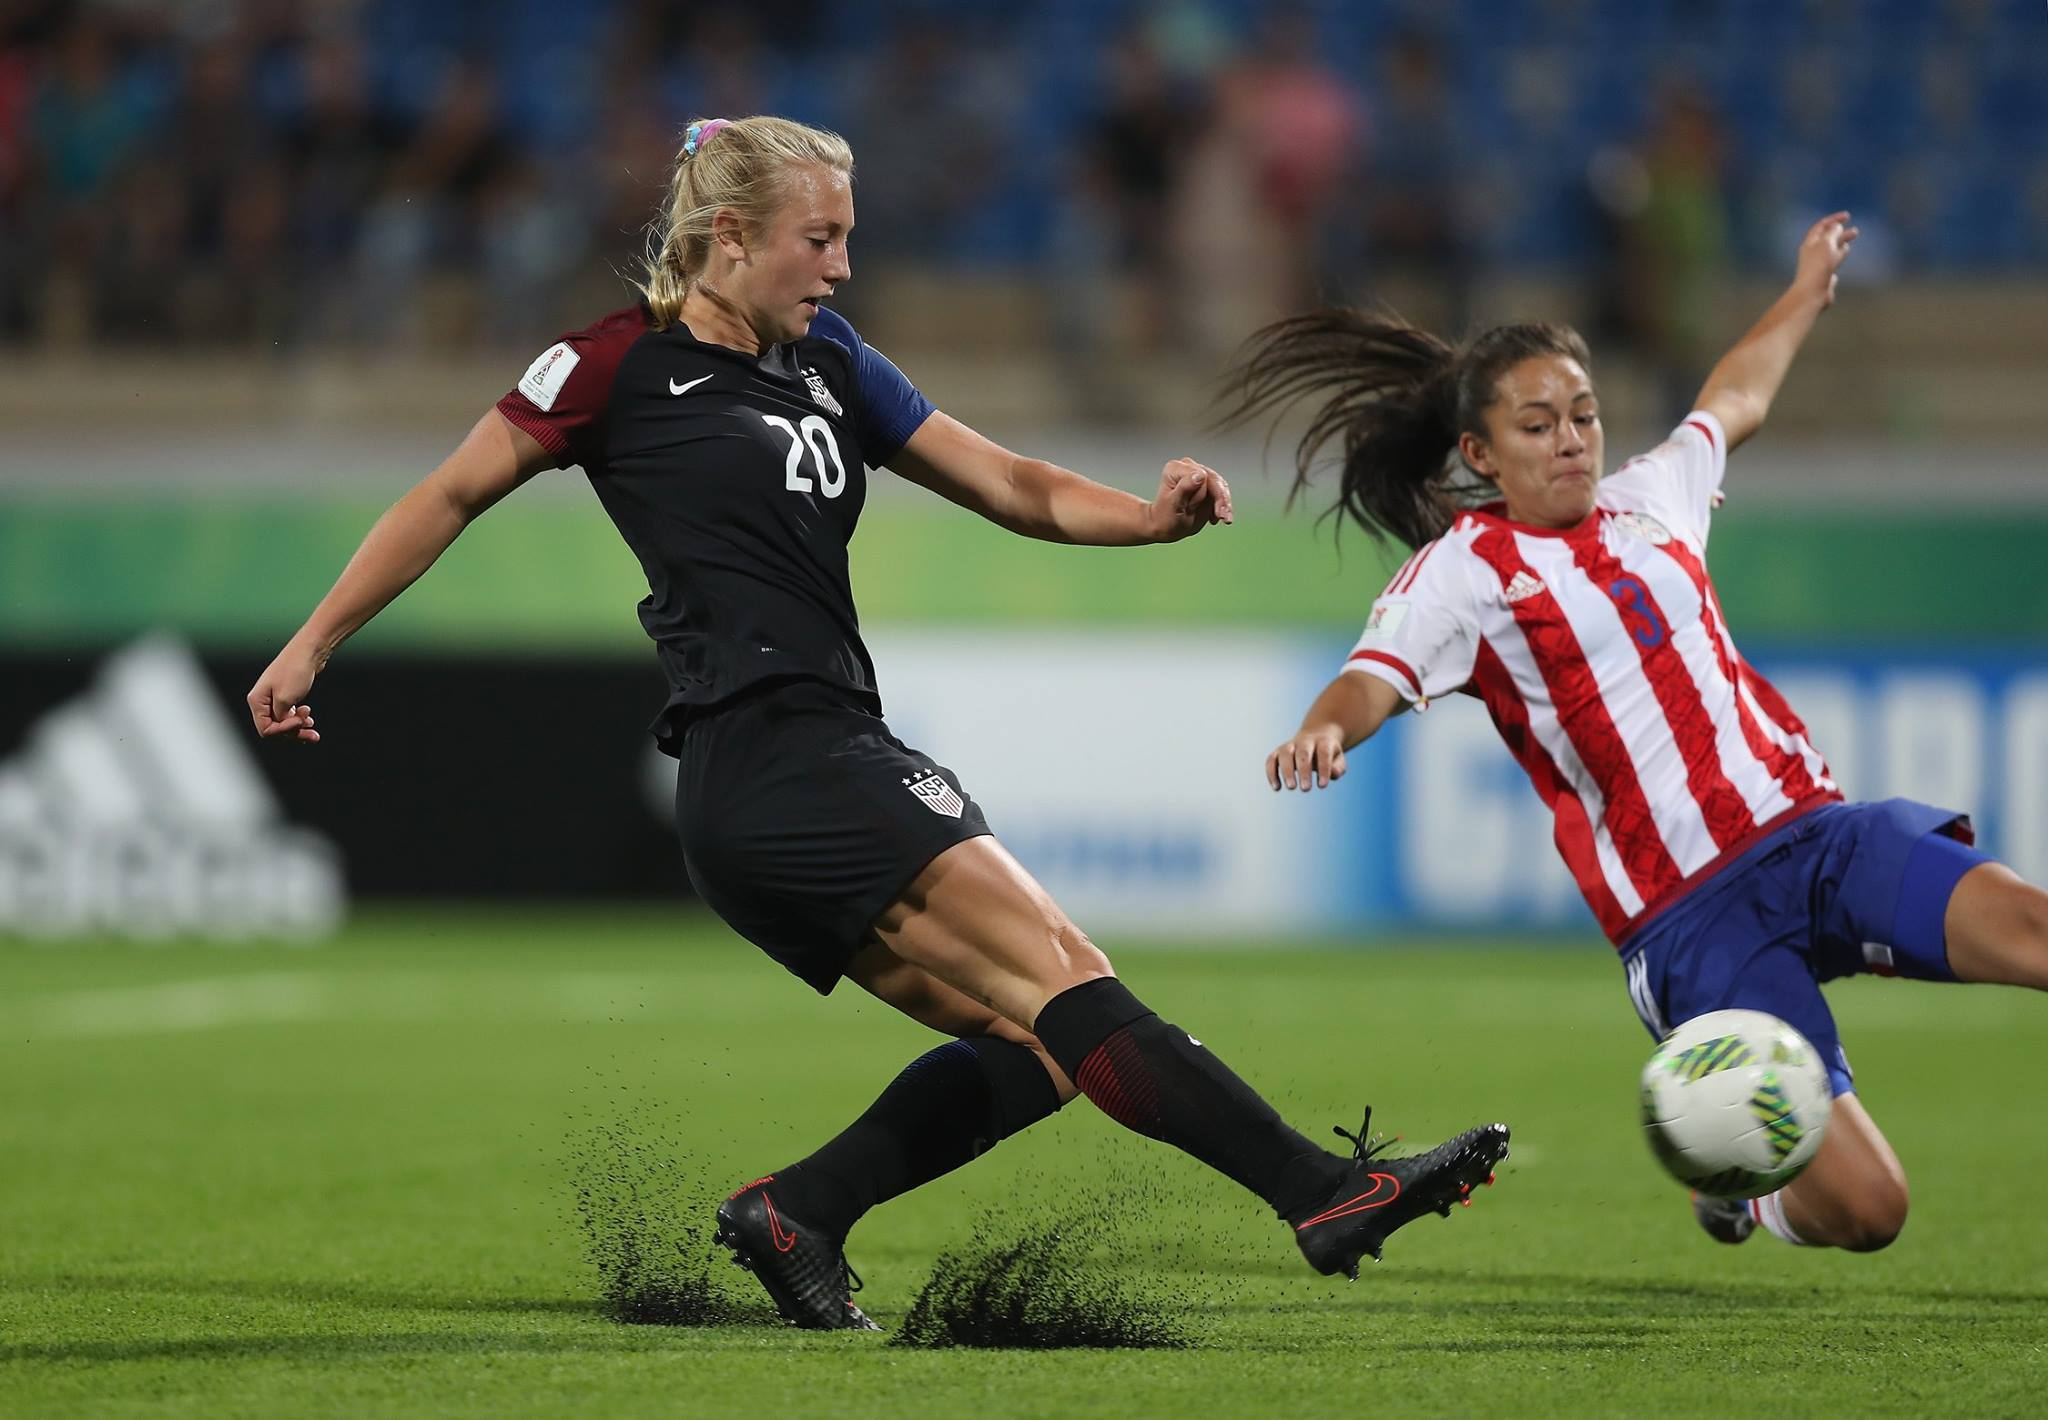 Cali Natives Score Two Goals In USA's 6-1 Win Over Paraguay In Opening Match of U-17 Women's World Cup